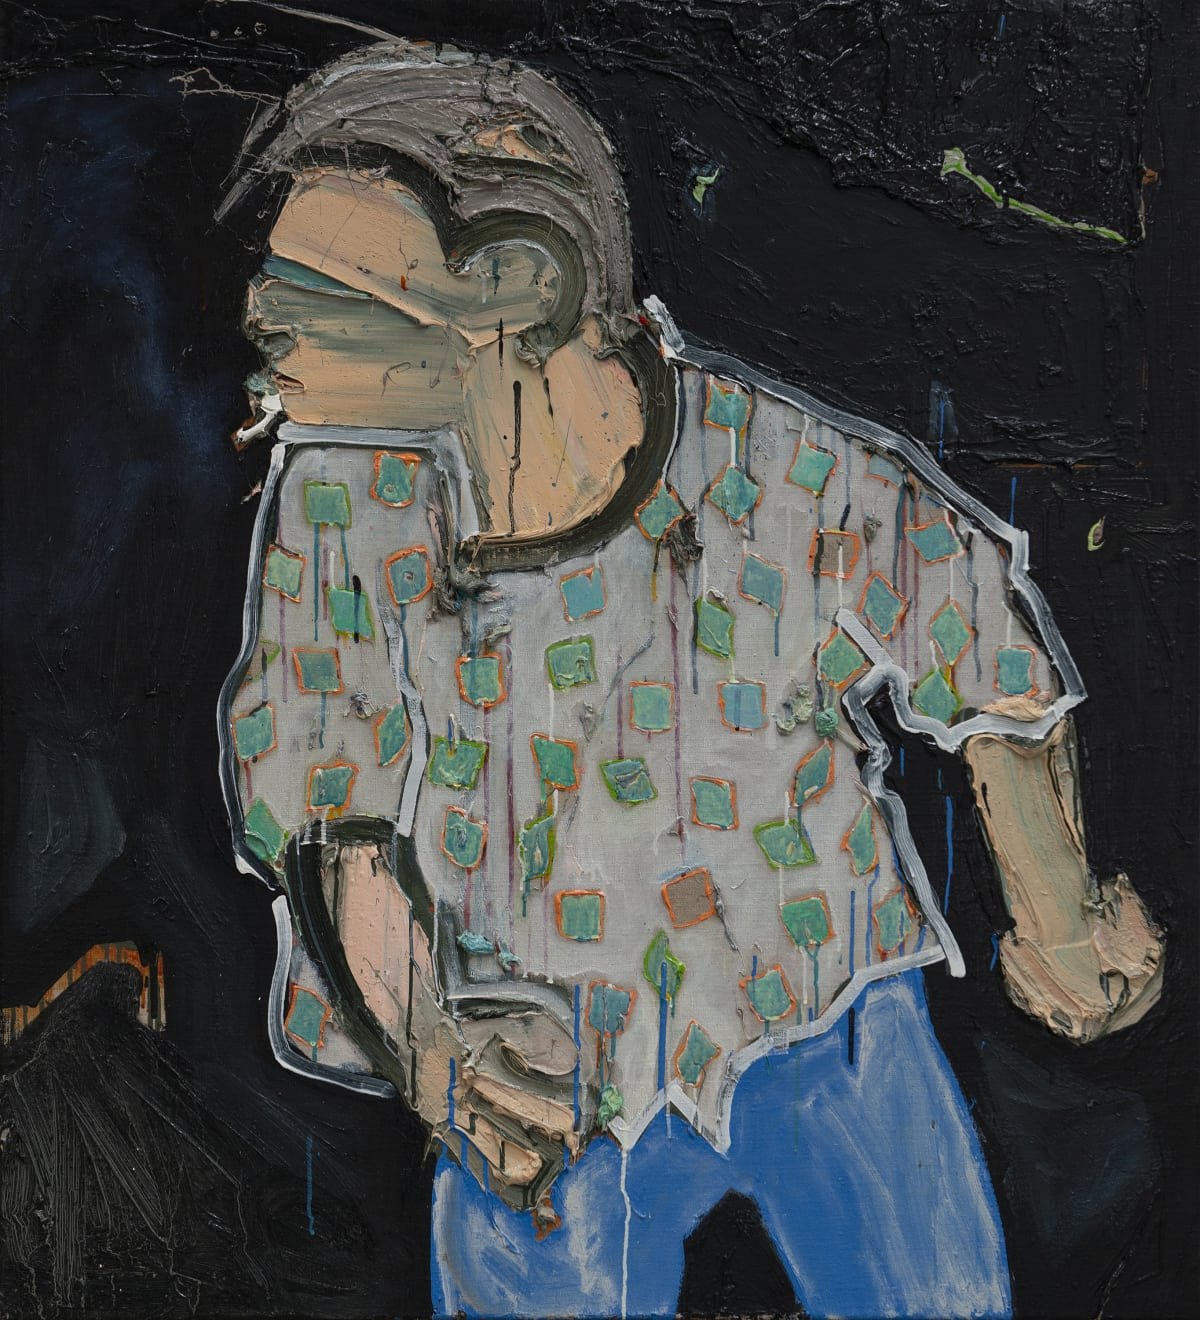 Toby Raine Mel Gibson Getting Drunk and Blaming it on the Jews. Painting Number 5 (checked shirt, cigarette), 2018 Oil on linen 110 x 100 cm 43 1/4 x 39 3/8 in